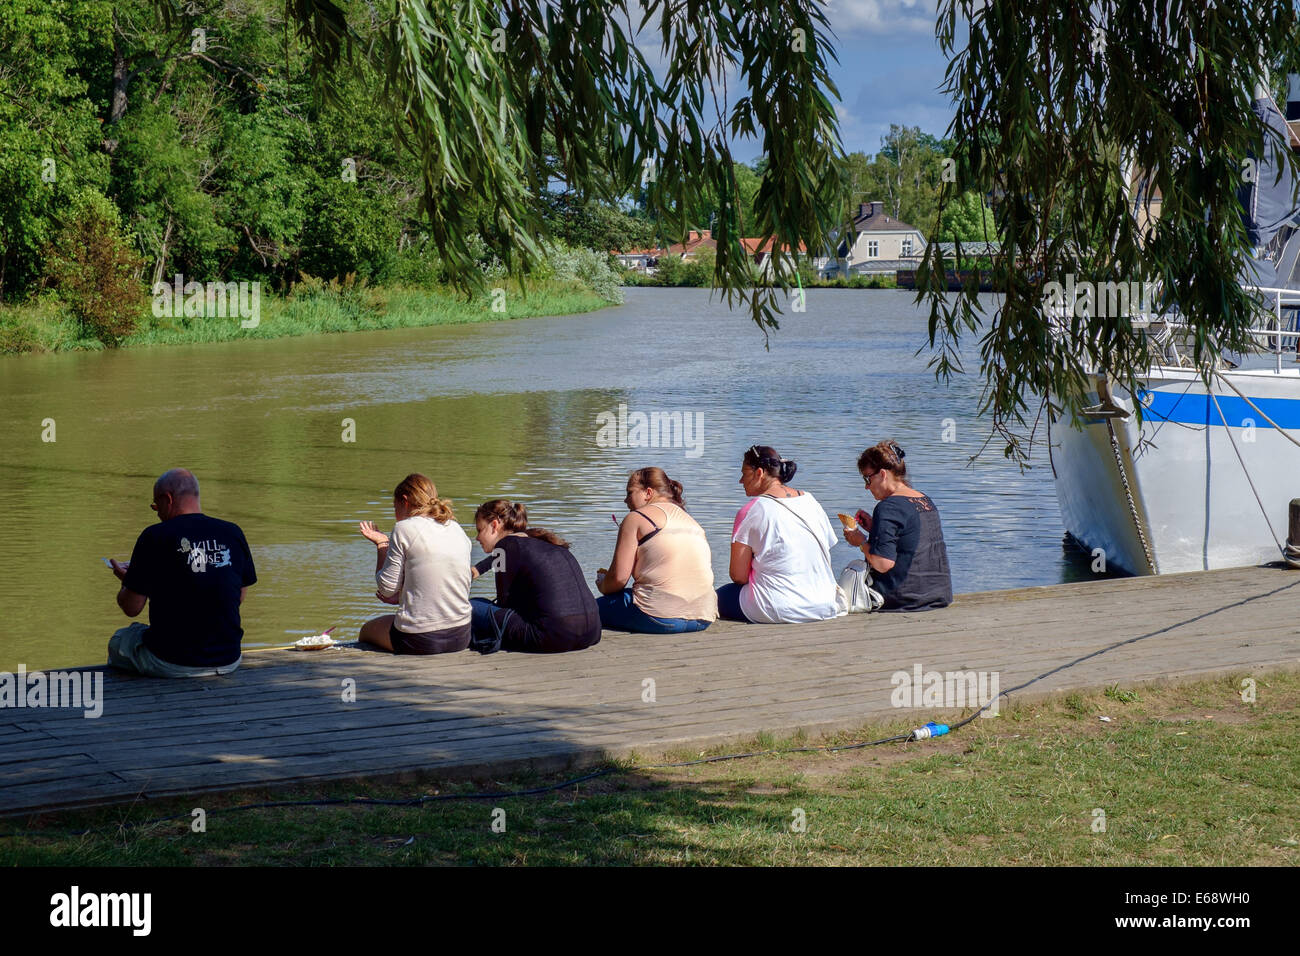 Tourists enjoy an ice cream break at Gota Canal in Soderkoping, Sweden. - Stock Image